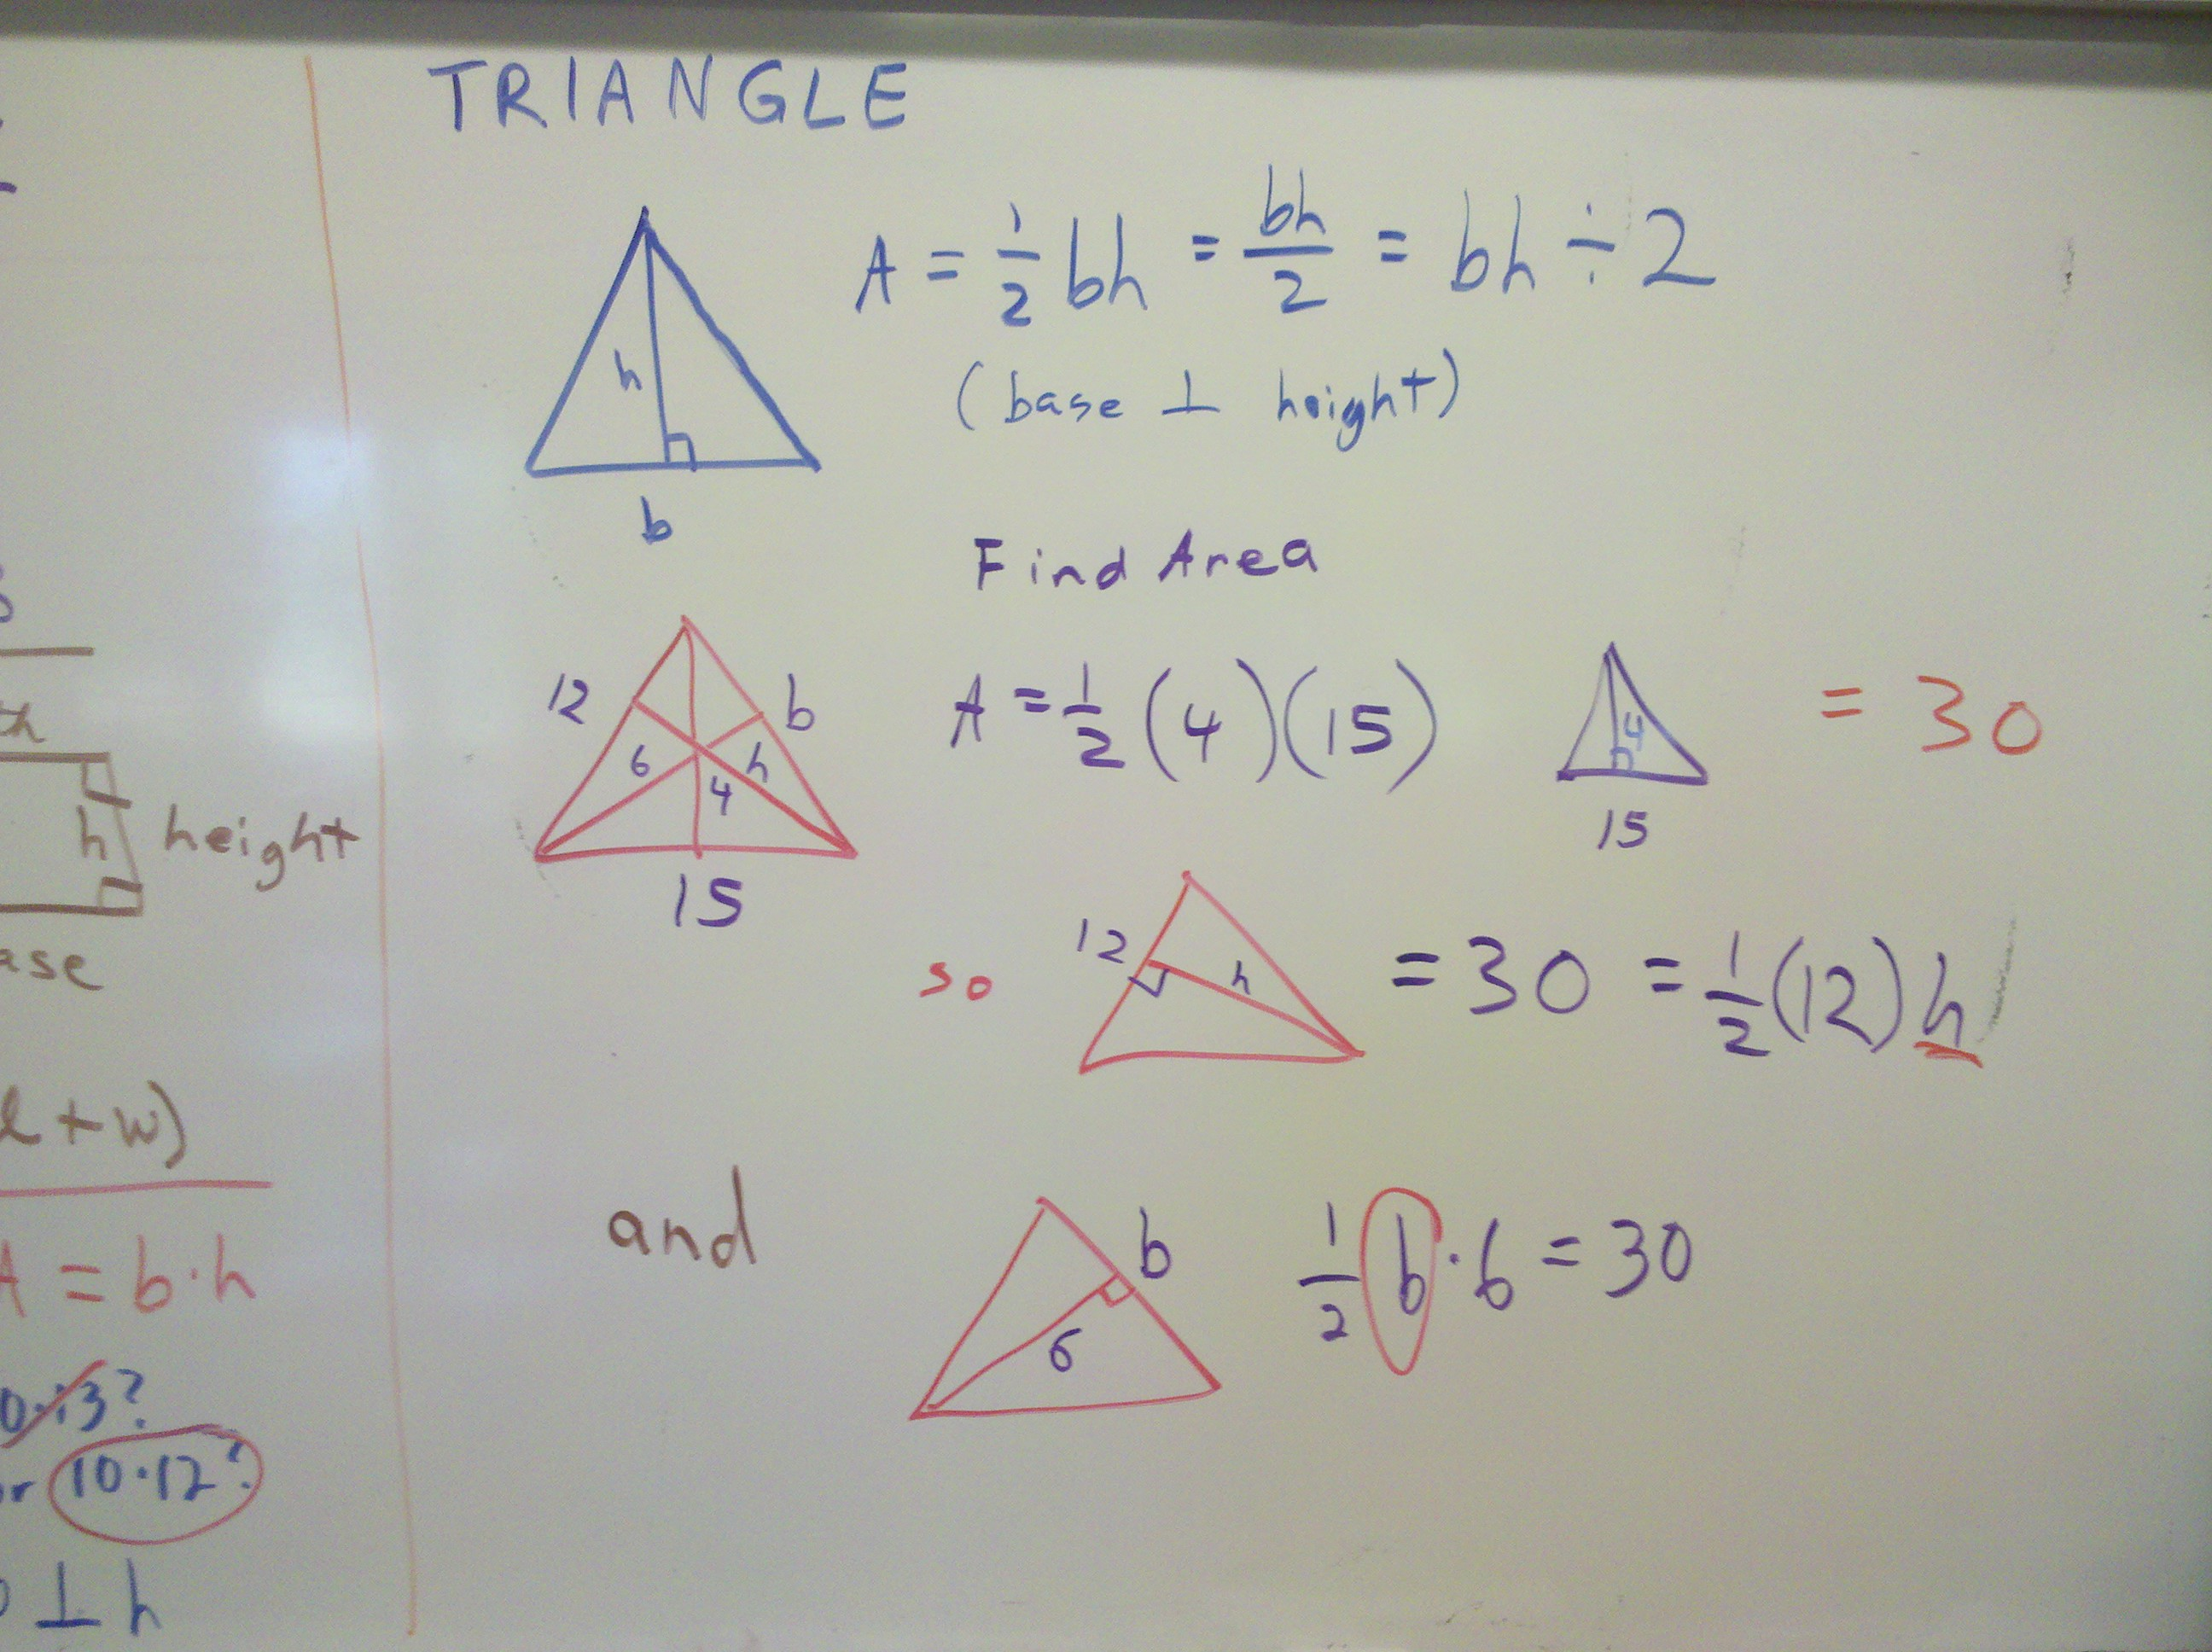 worksheet Area Of Triangles And Trapezoids Worksheet gebhard curt gdownloads parallelogram area triangle rhombus kite area